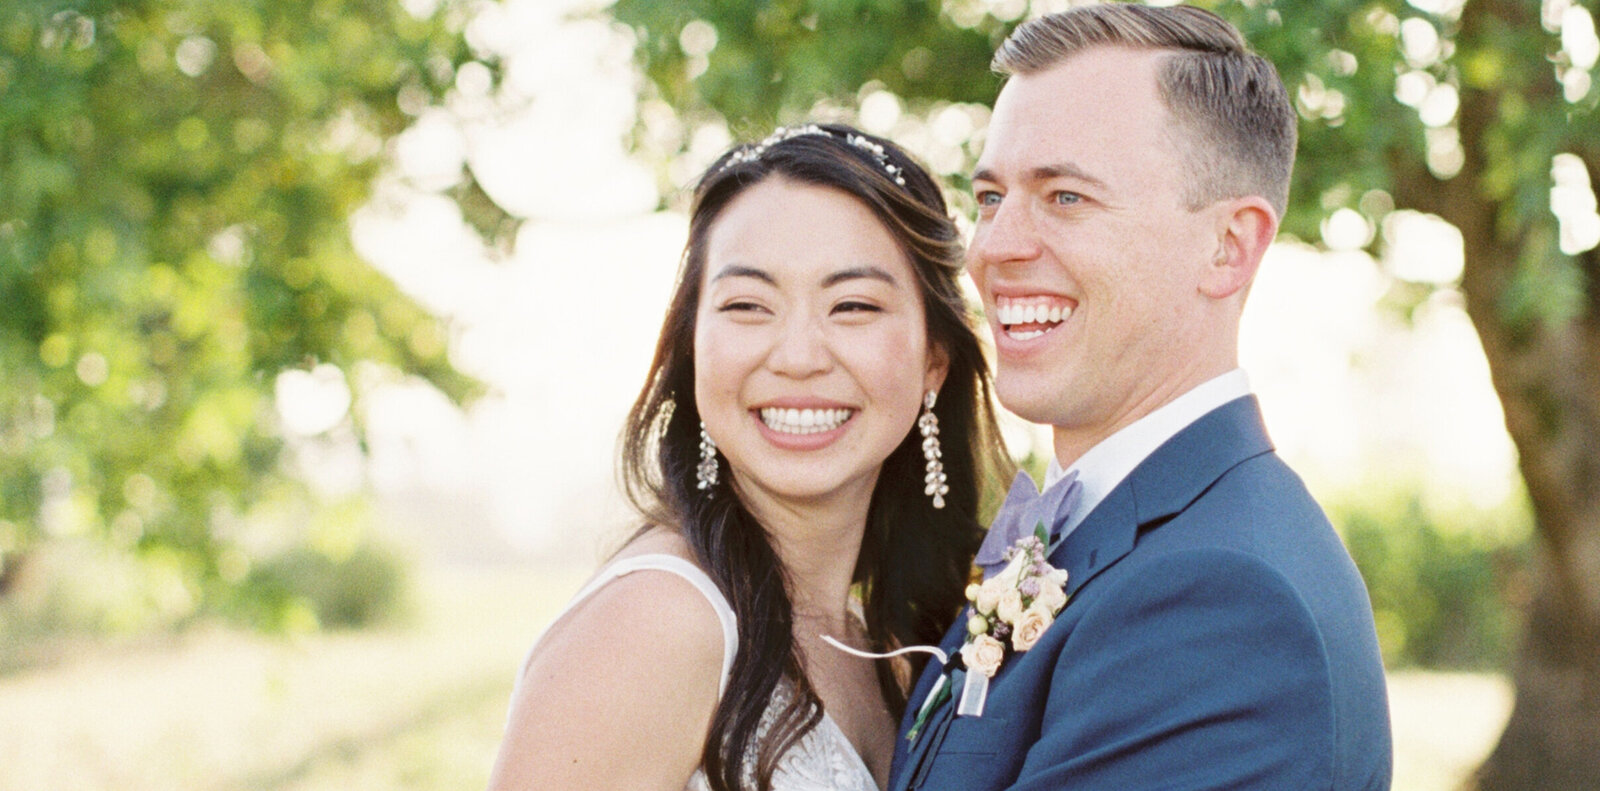 happy bride and groom at california vineyard wedding